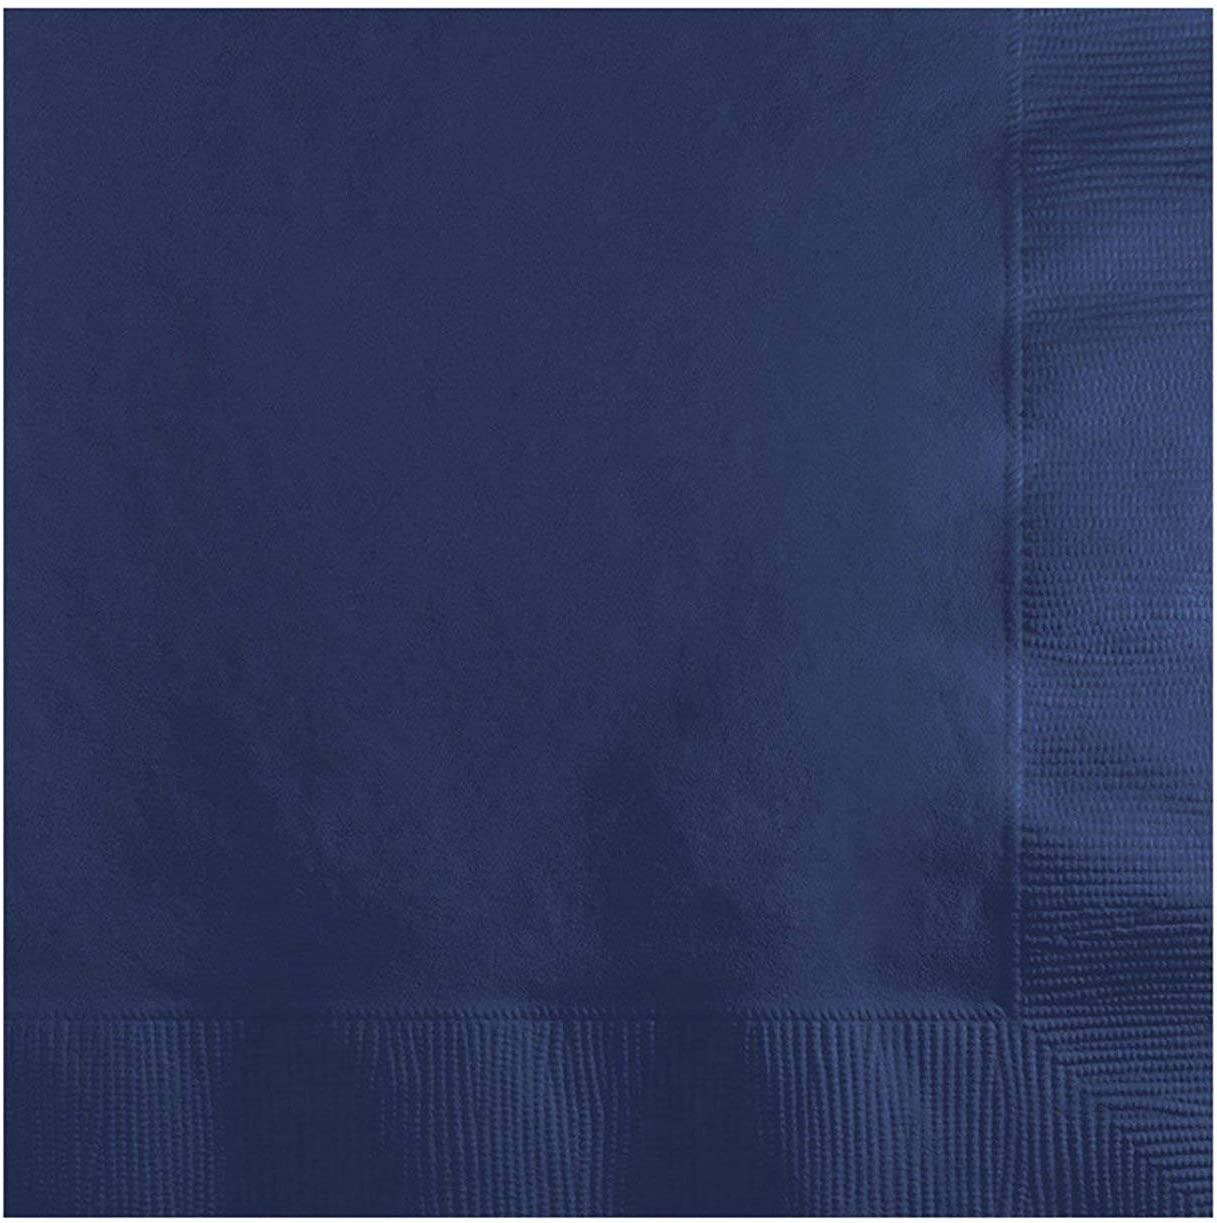 Solid Navy Beverage Napkins (200 Count)